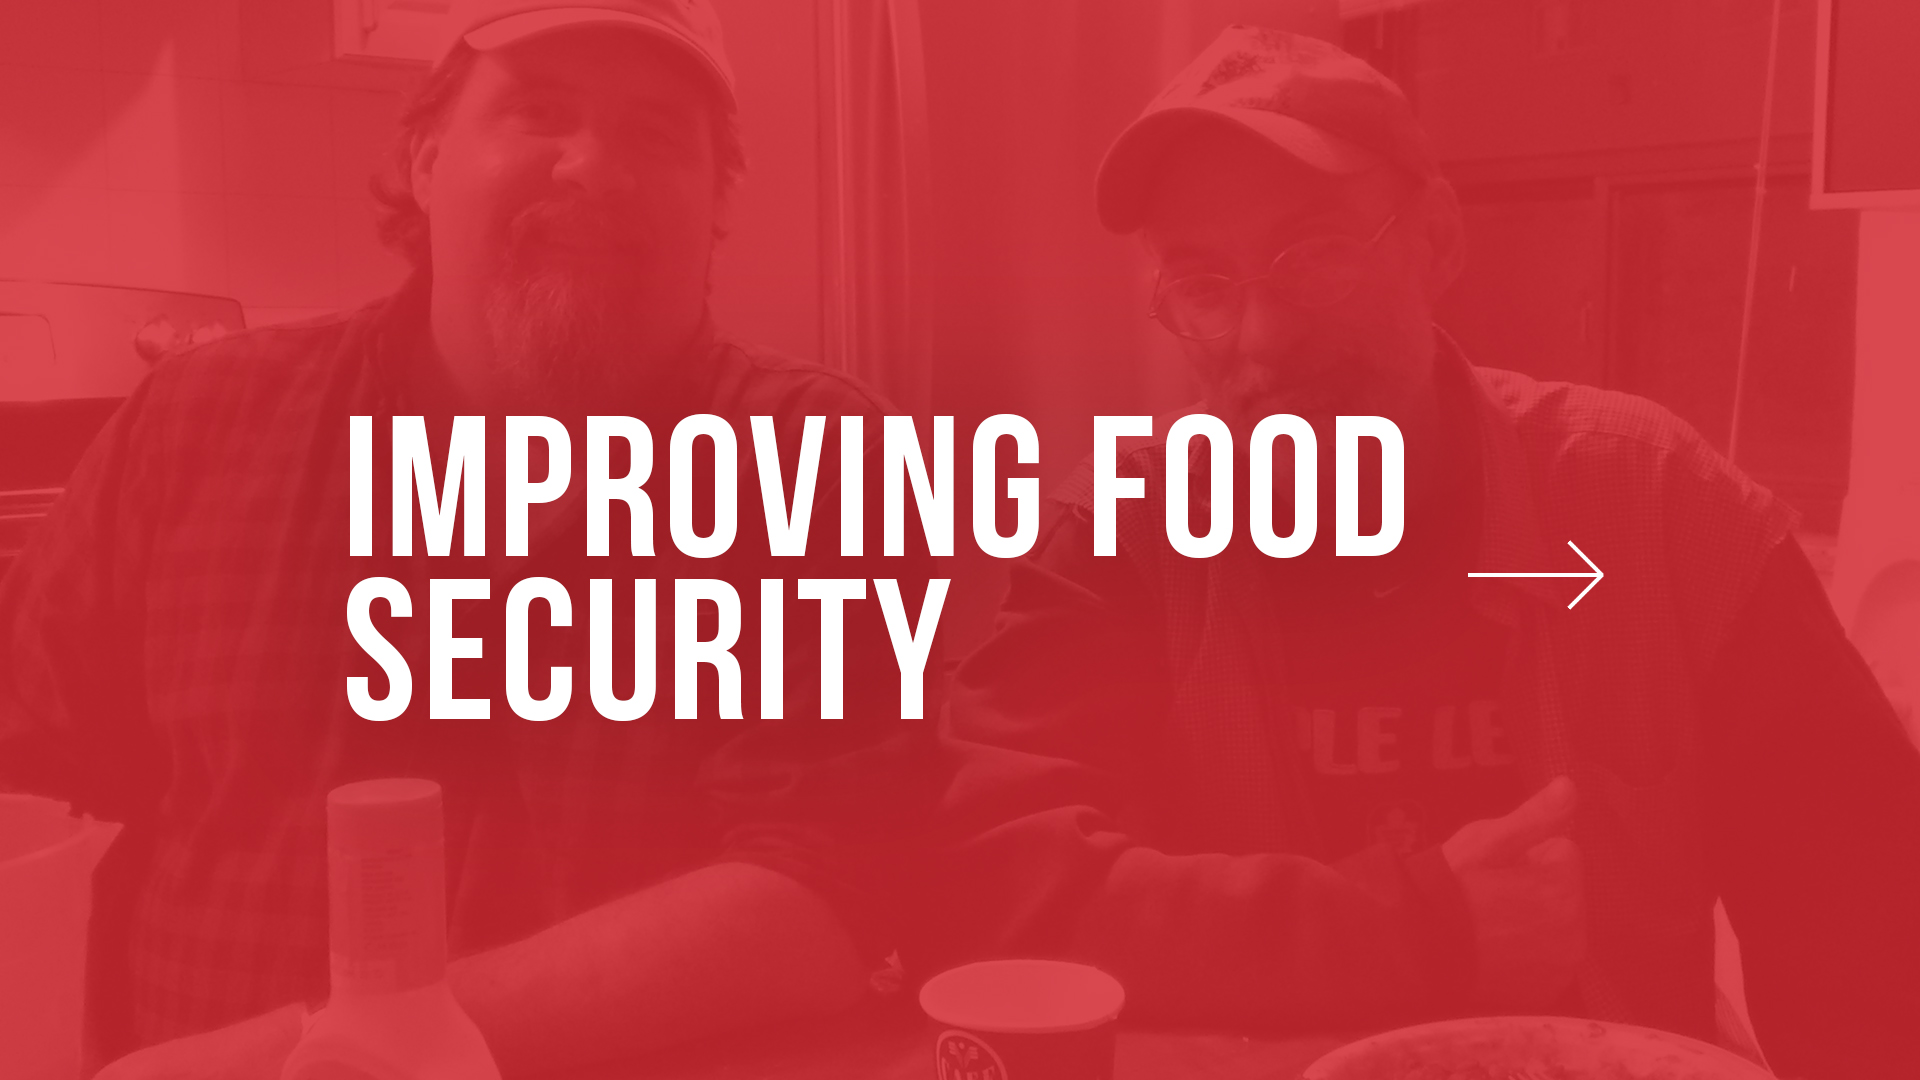 IMPROVING FOOD SECURITY BUTTON.jpg